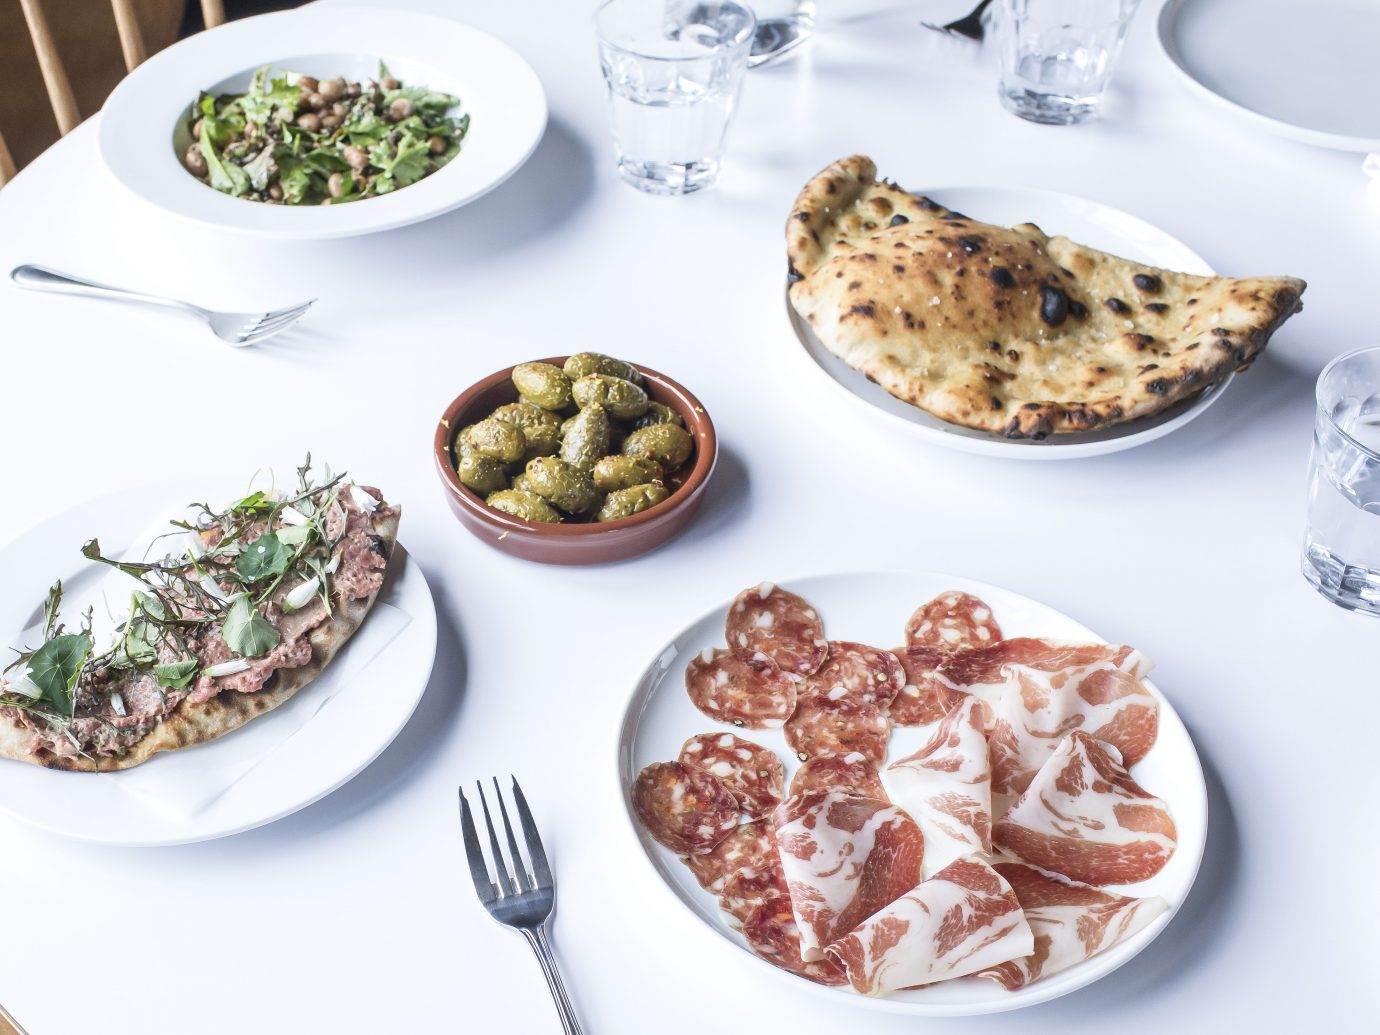 Table of food feature prosciutto, olives, pizzas, and salad